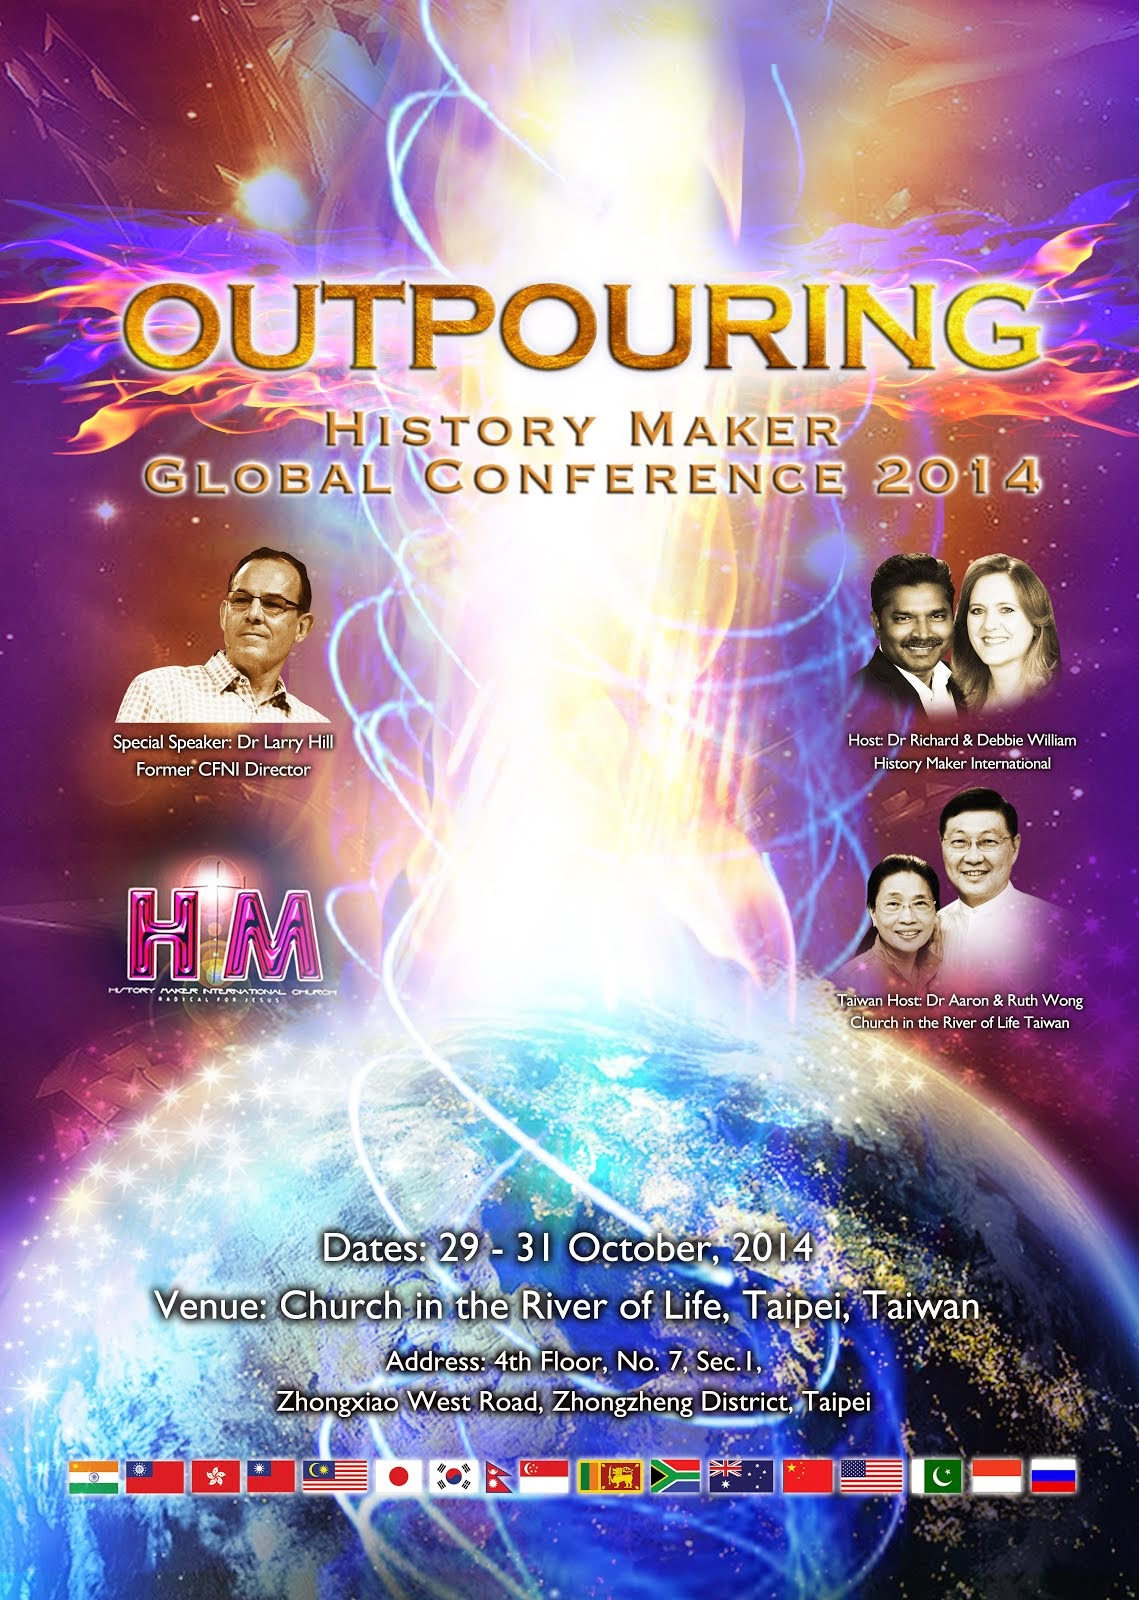 HISTORY MAKER GLOBAL CONFERENCE 2014 - TAIWAN